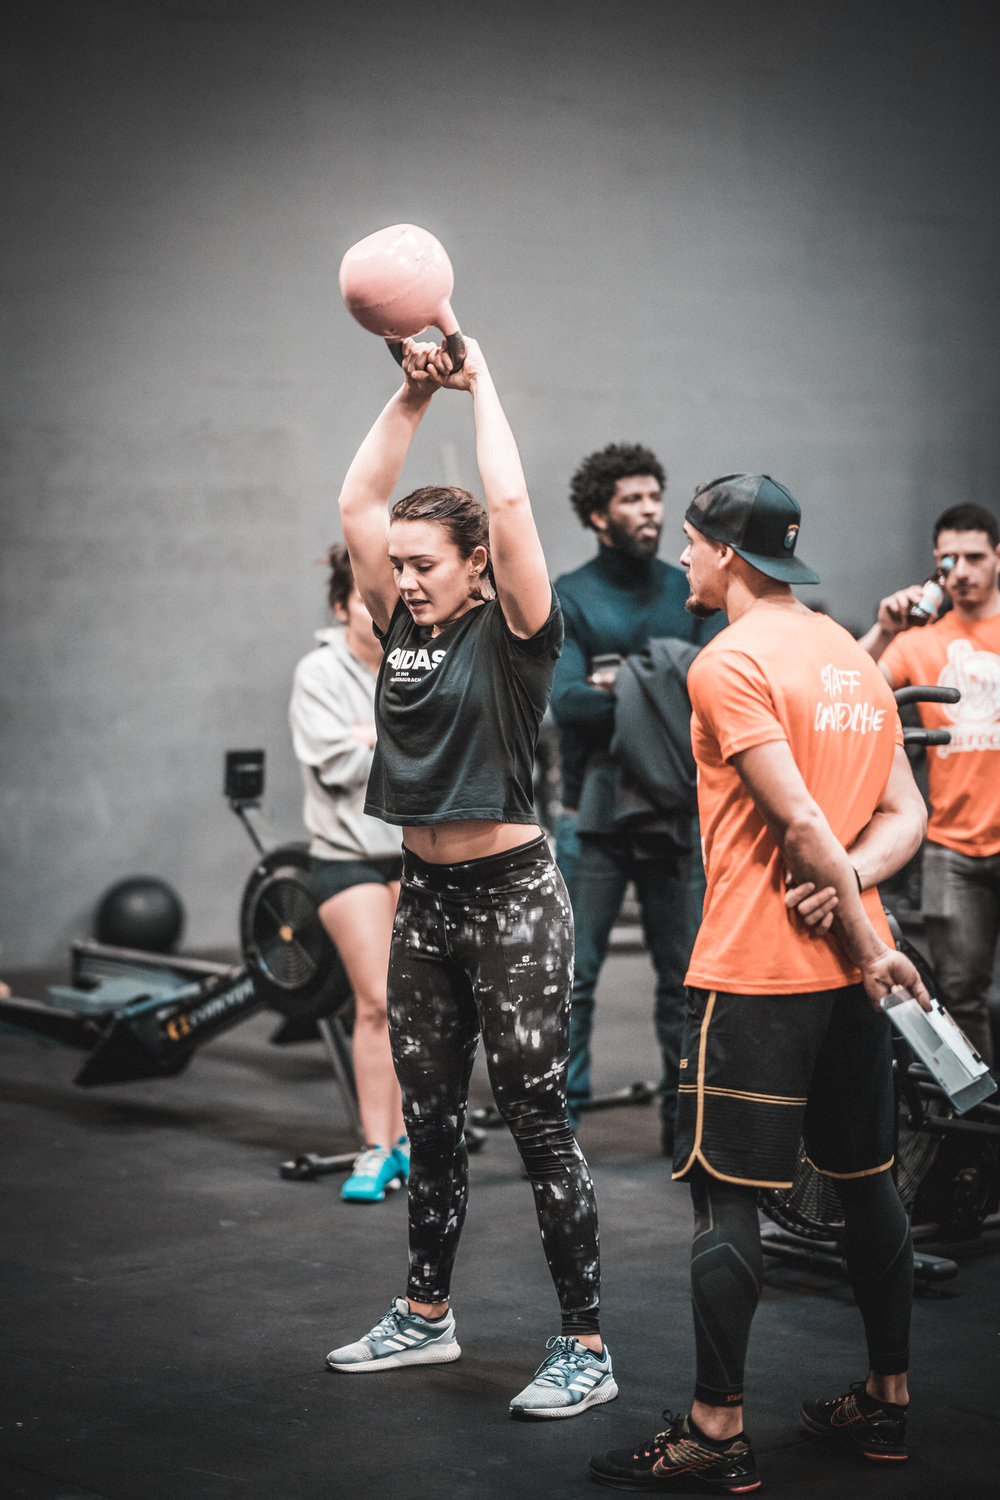 Crossfit Gavroche_Christmas Throwdown 2018_ Florian Leger_ N°-56.jpg